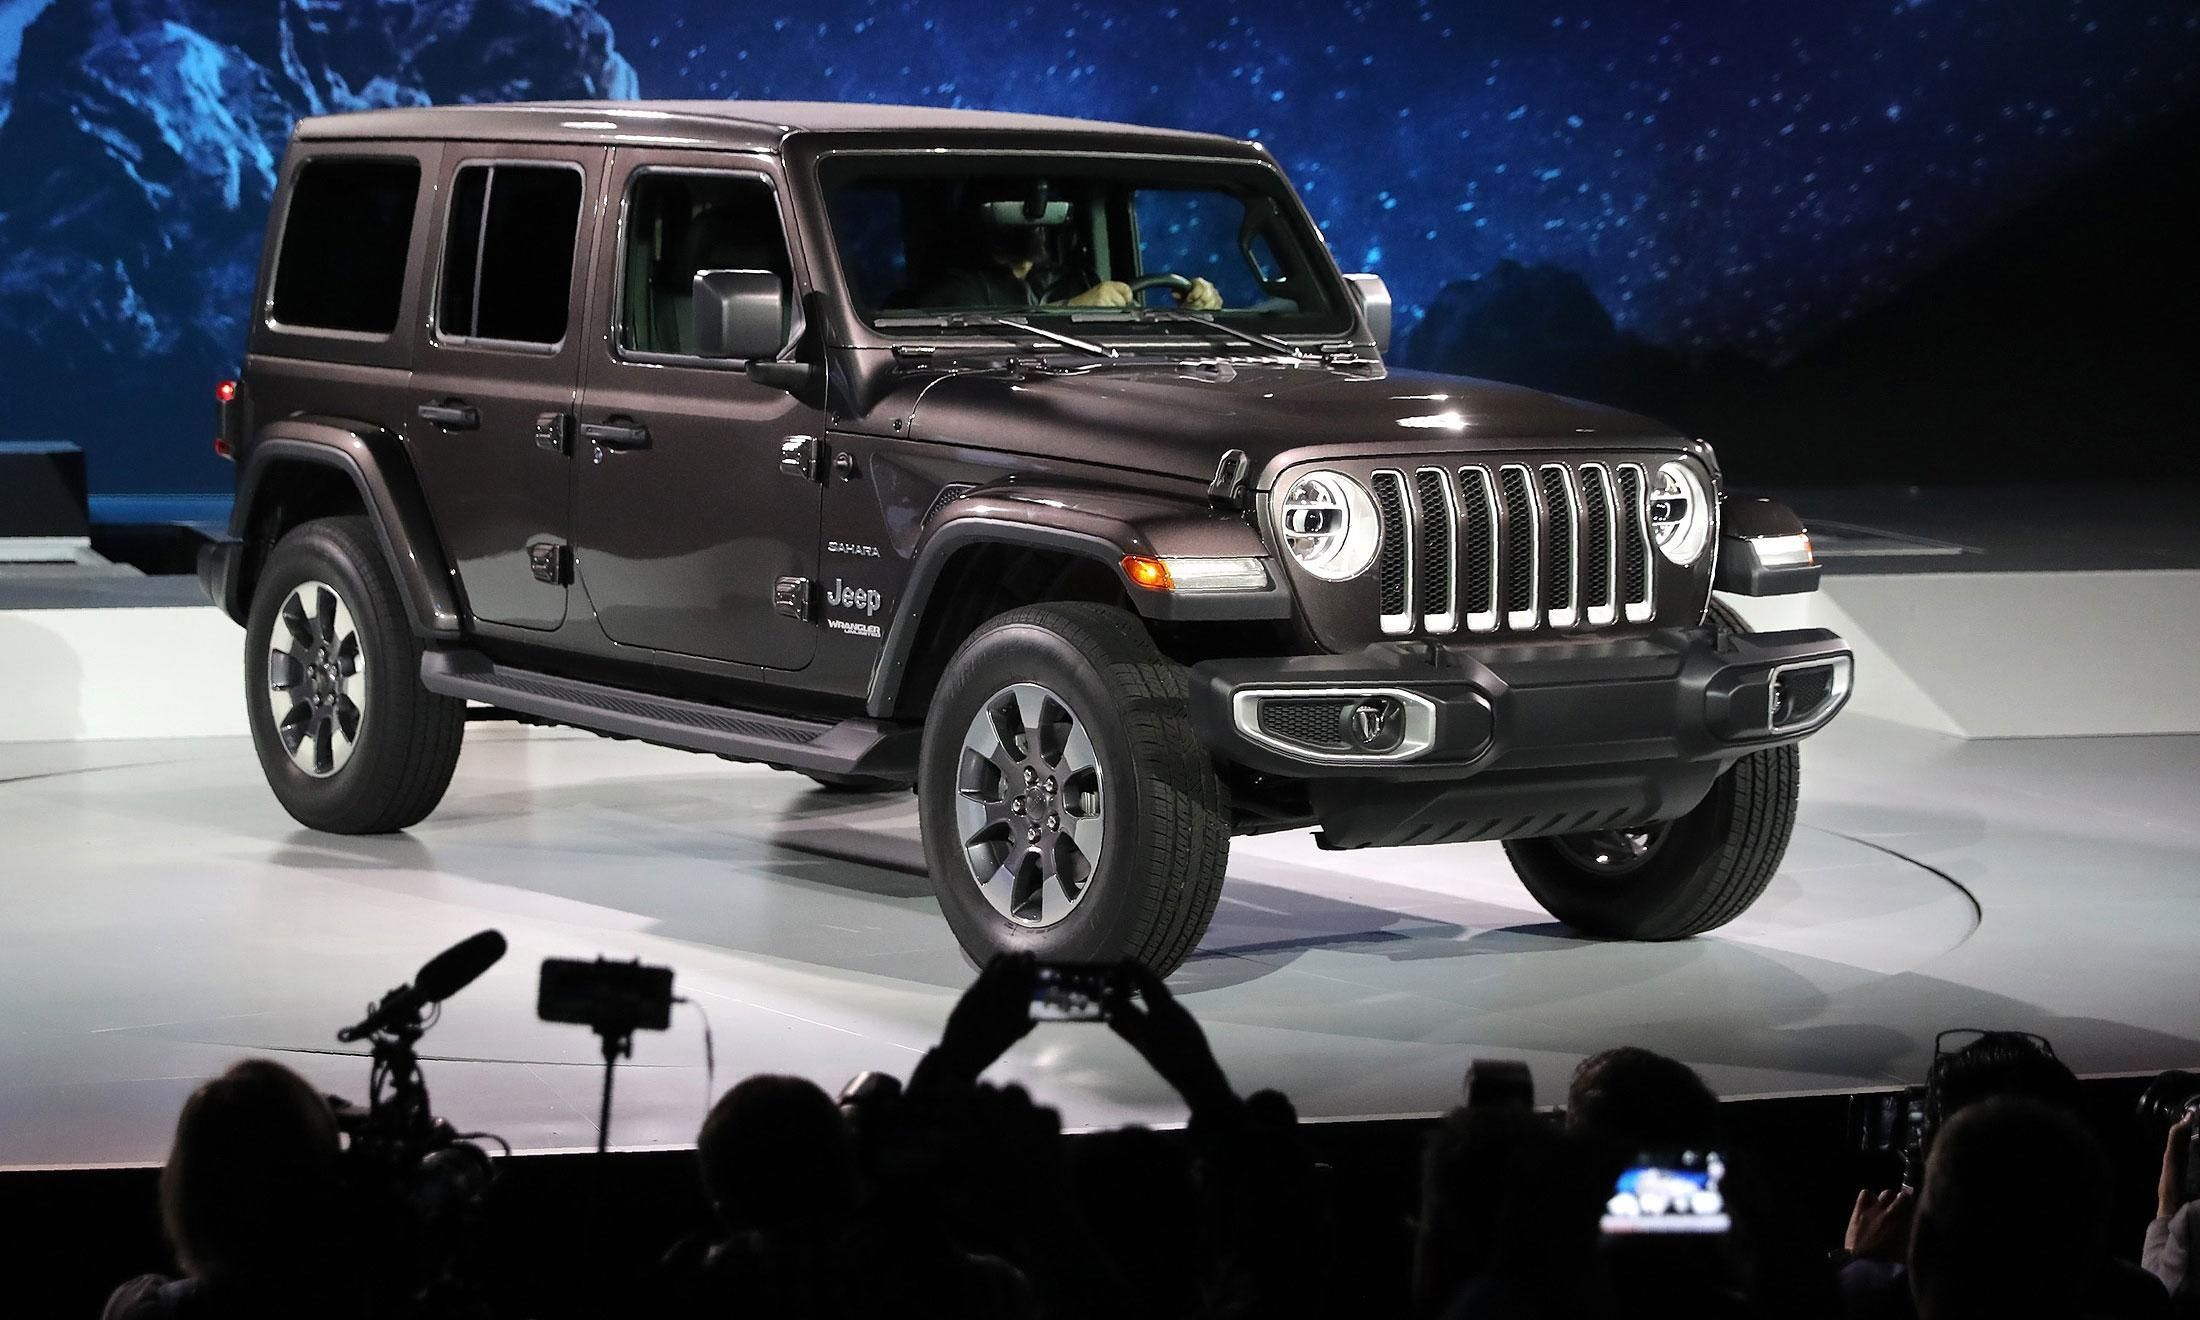 Under 2018 Jeep Wrangler S Familiar Sheet Metal A Modern Day Throughout Redesign